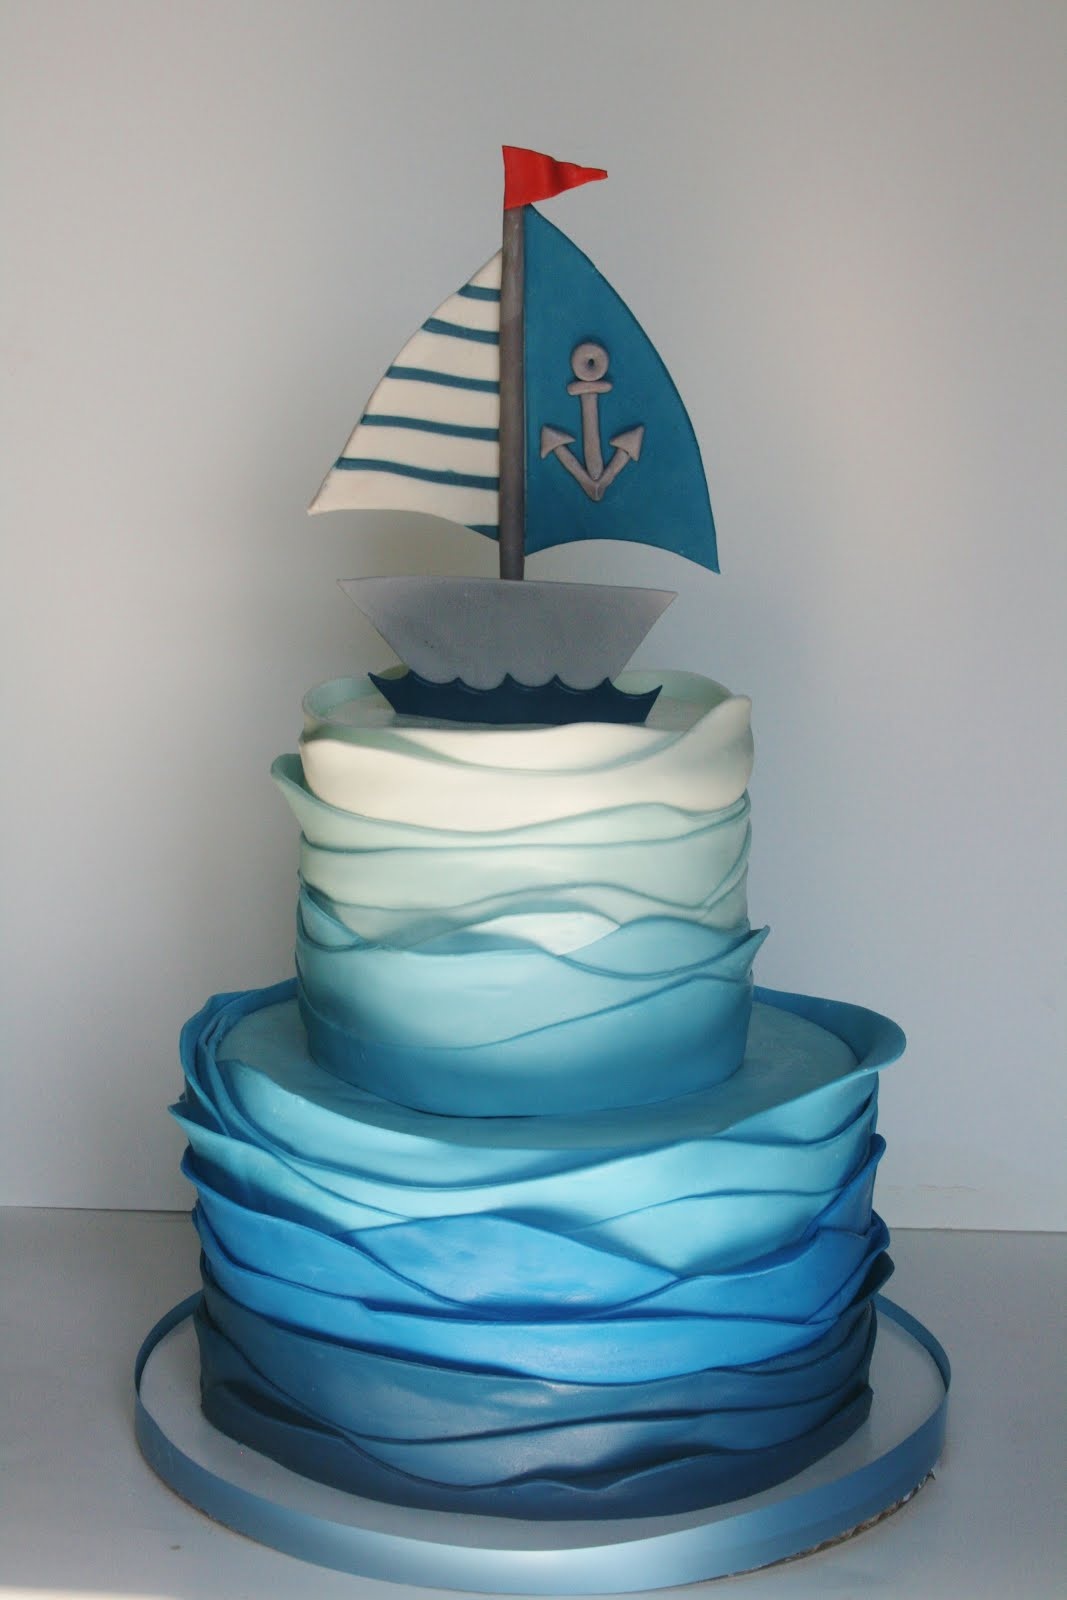 party theme of the month in my cake world is definitely nautical